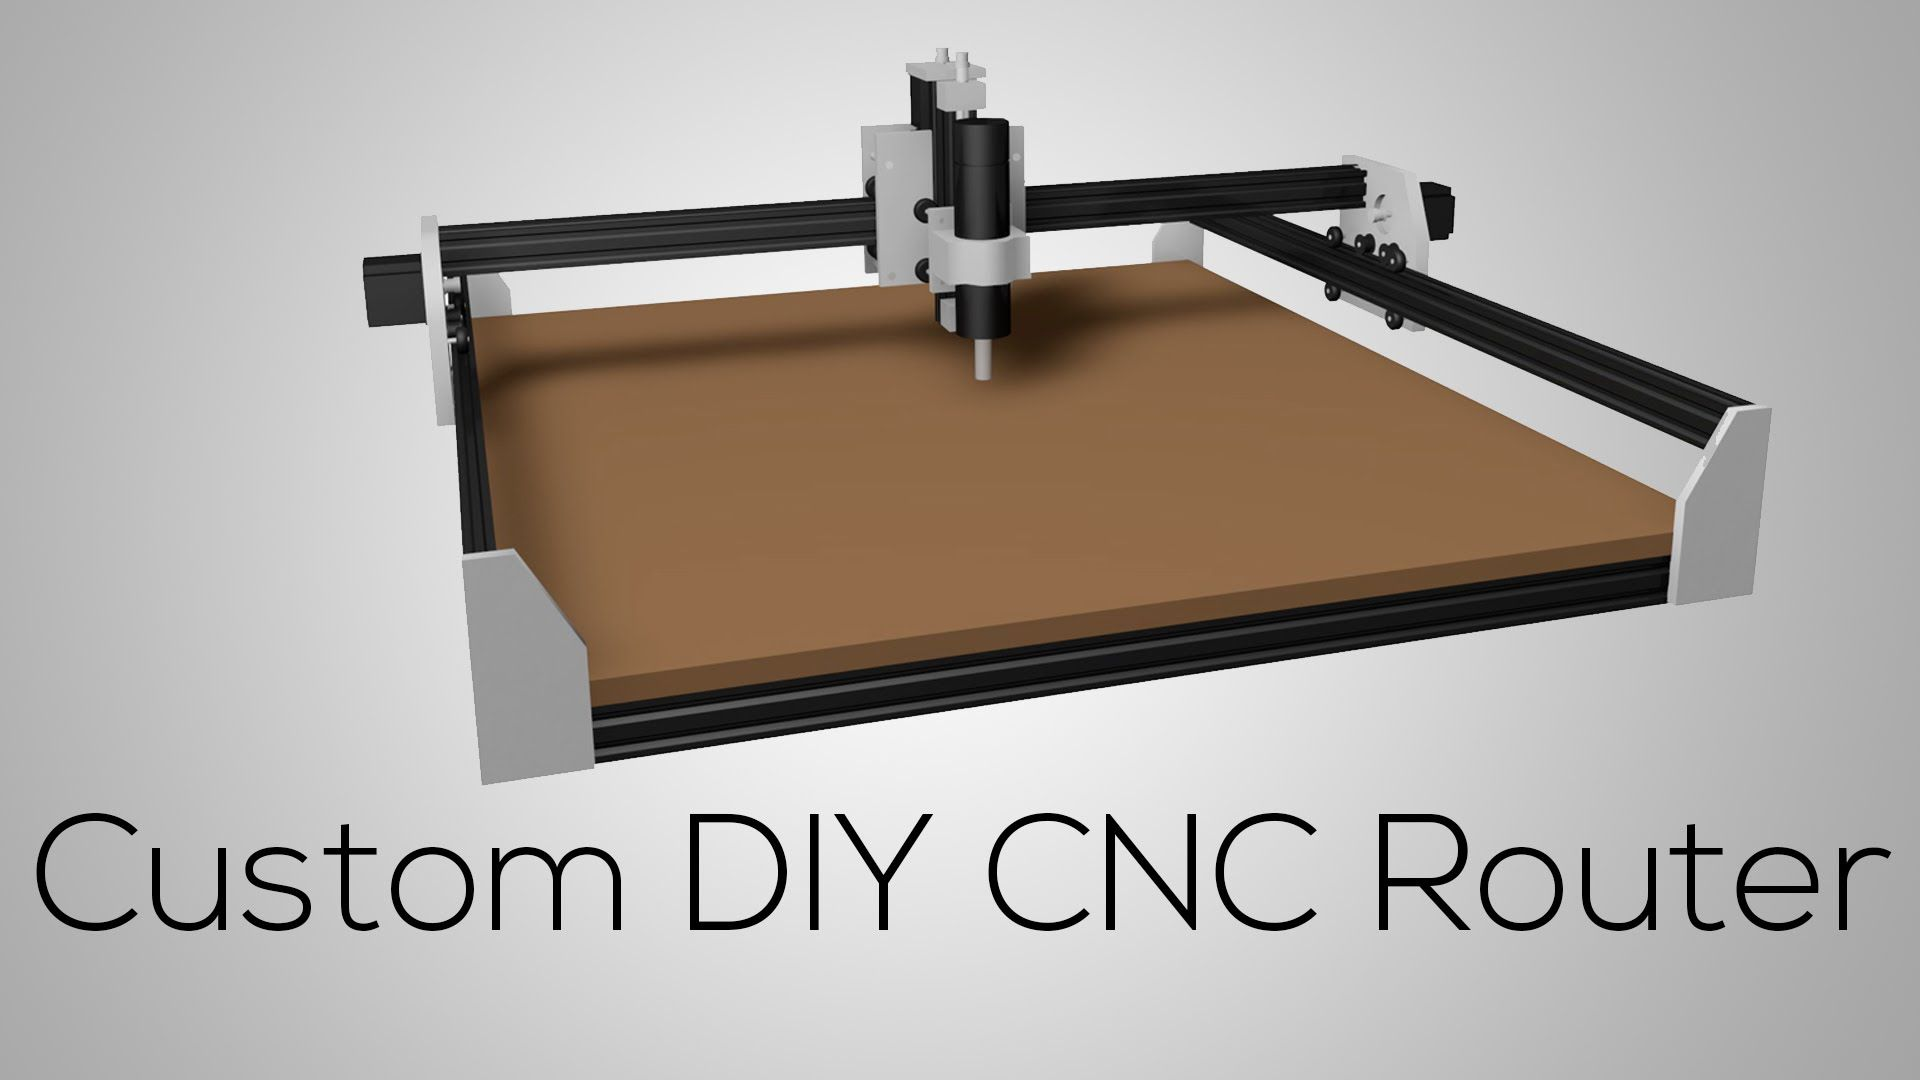 Custom DIY CNC ROUTER 1